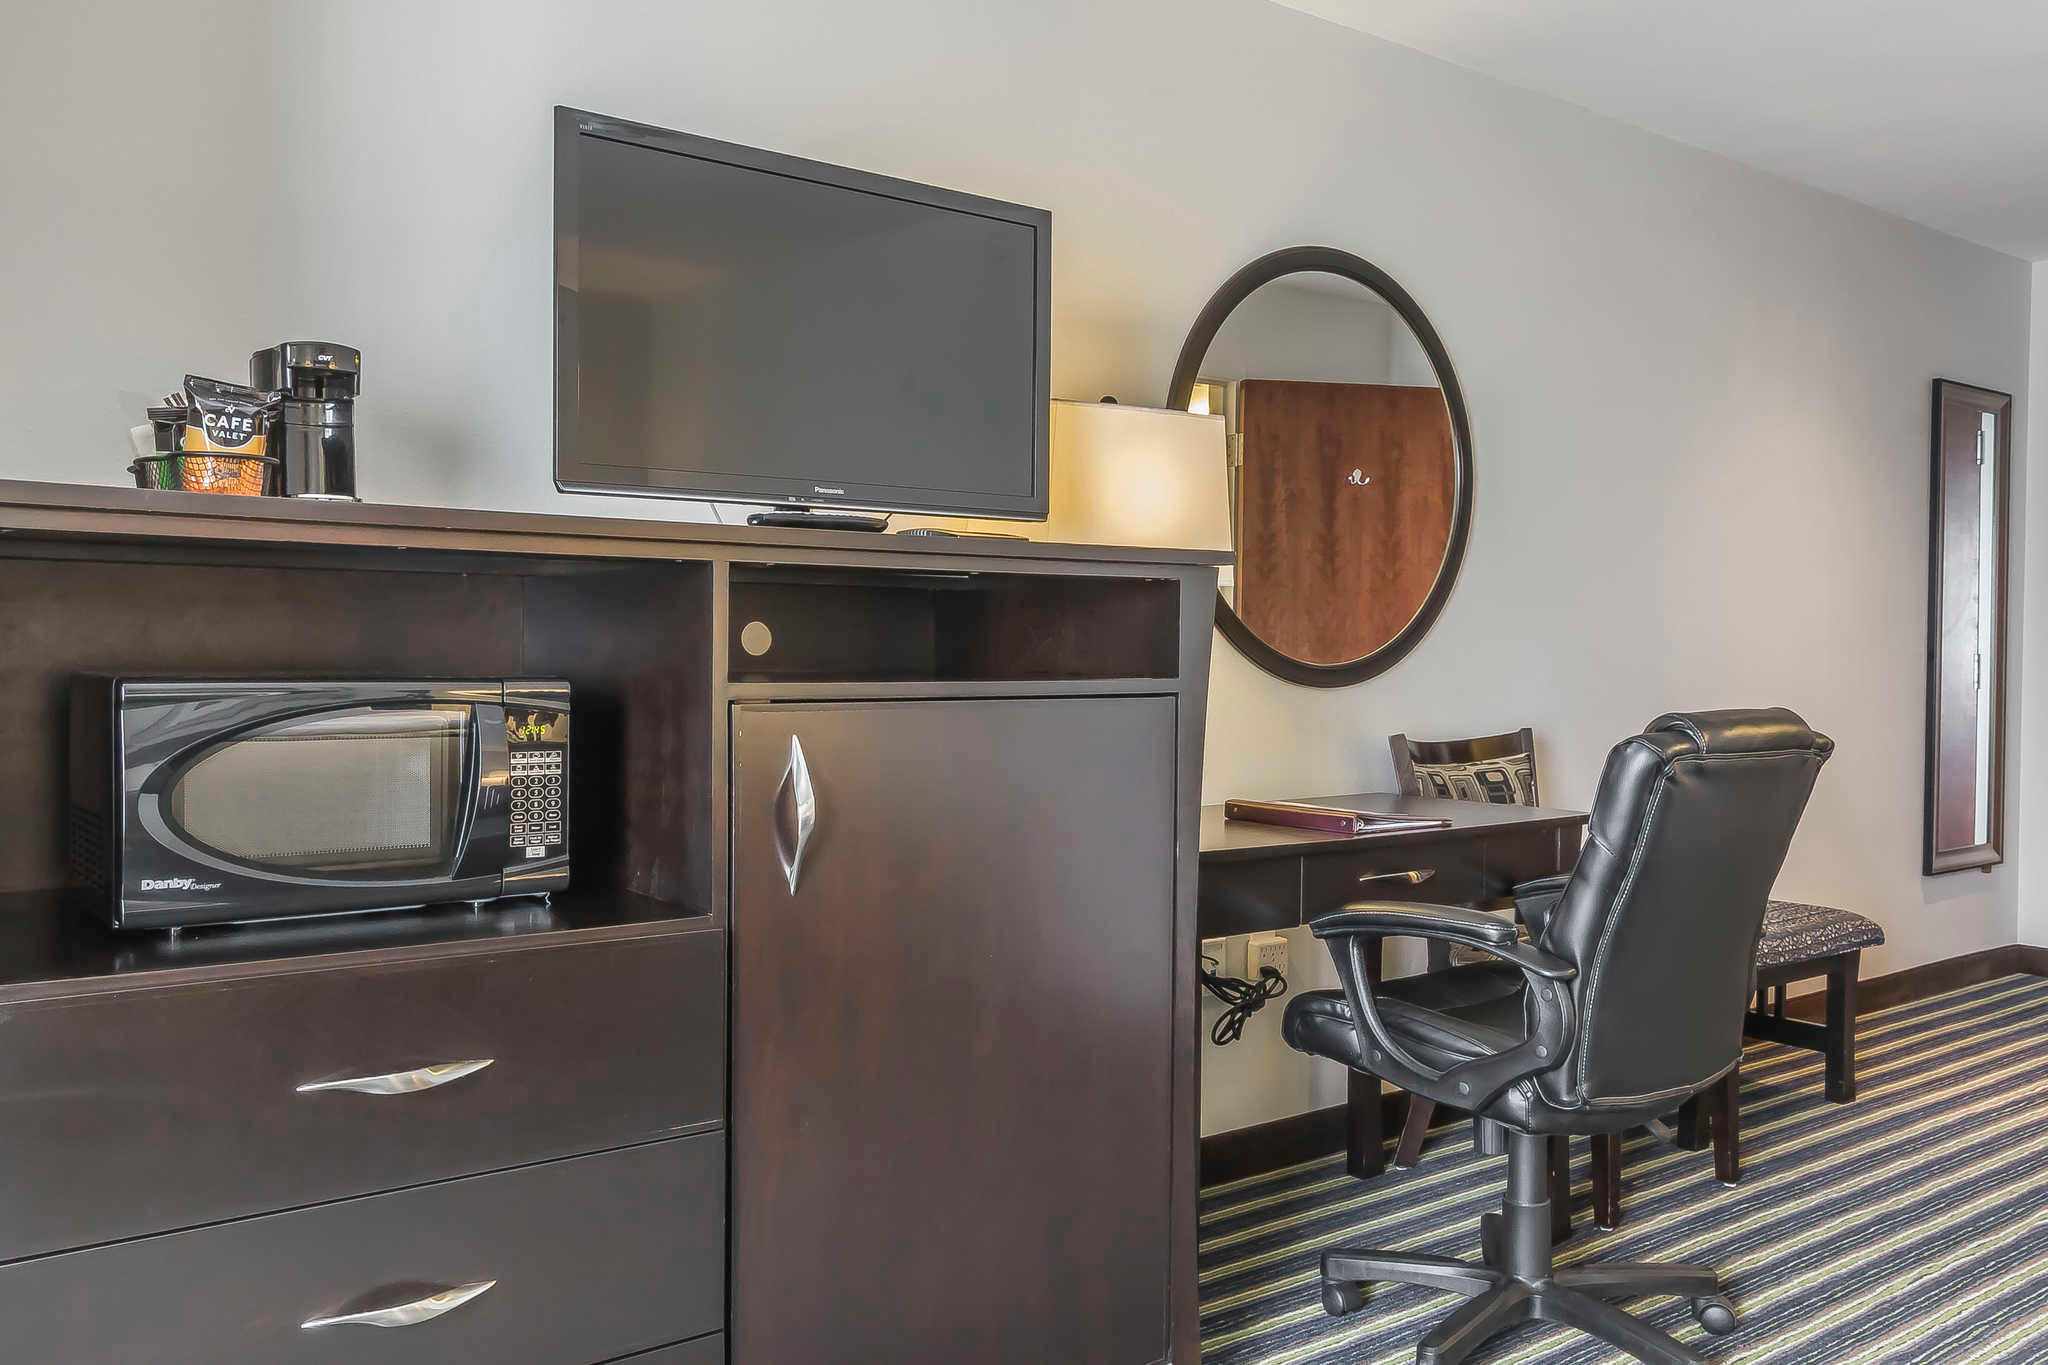 Comfort Inn & Suites in Moose Jaw